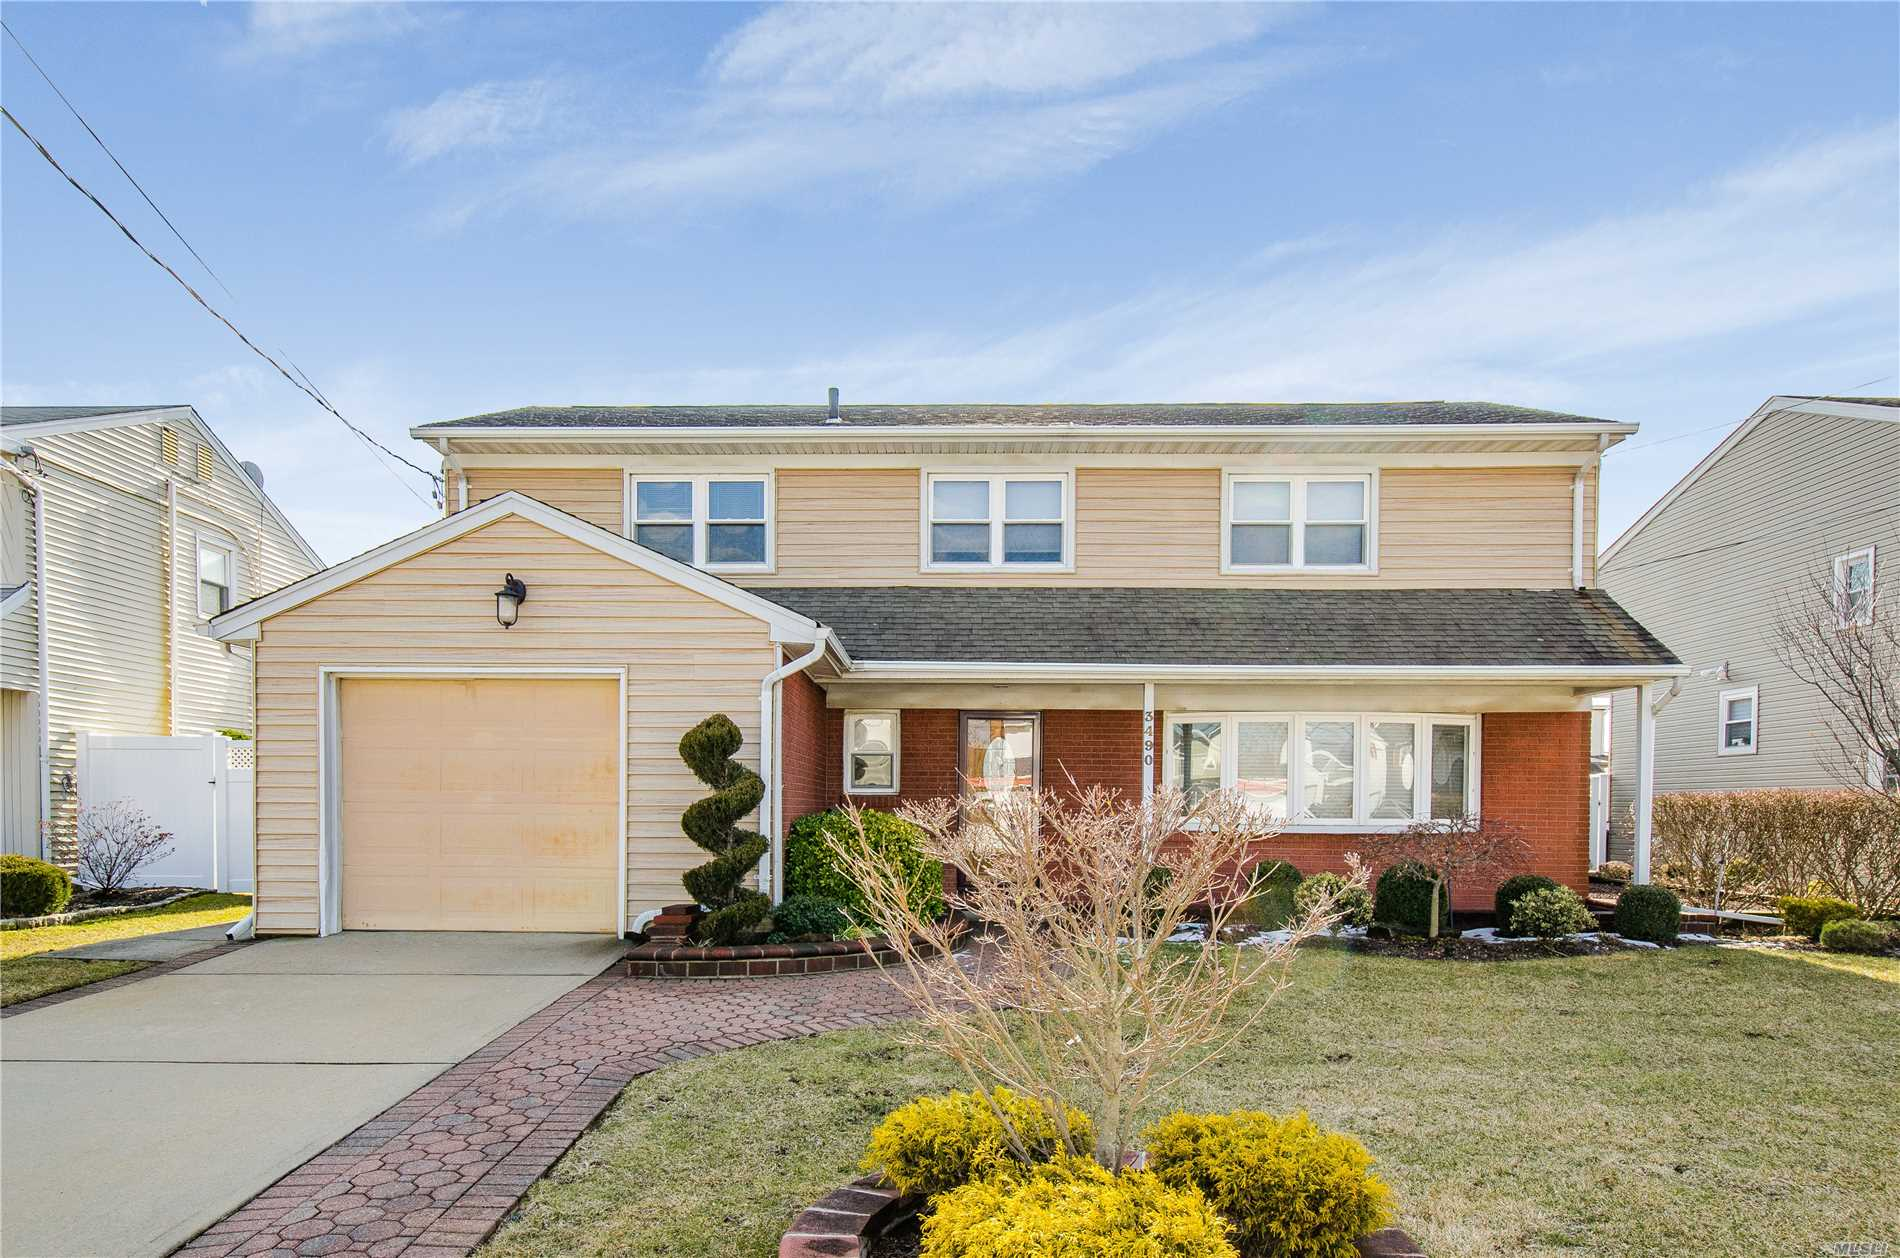 Beautiful Splanch, Mid Block, 7 Year Old Roof, Siding, Windows And Gas Burner, Cac, Finished Basement With Ceramic Tile Floor. 1.5 Car Garage. Beautifully Landscaped. Flood Zone X.